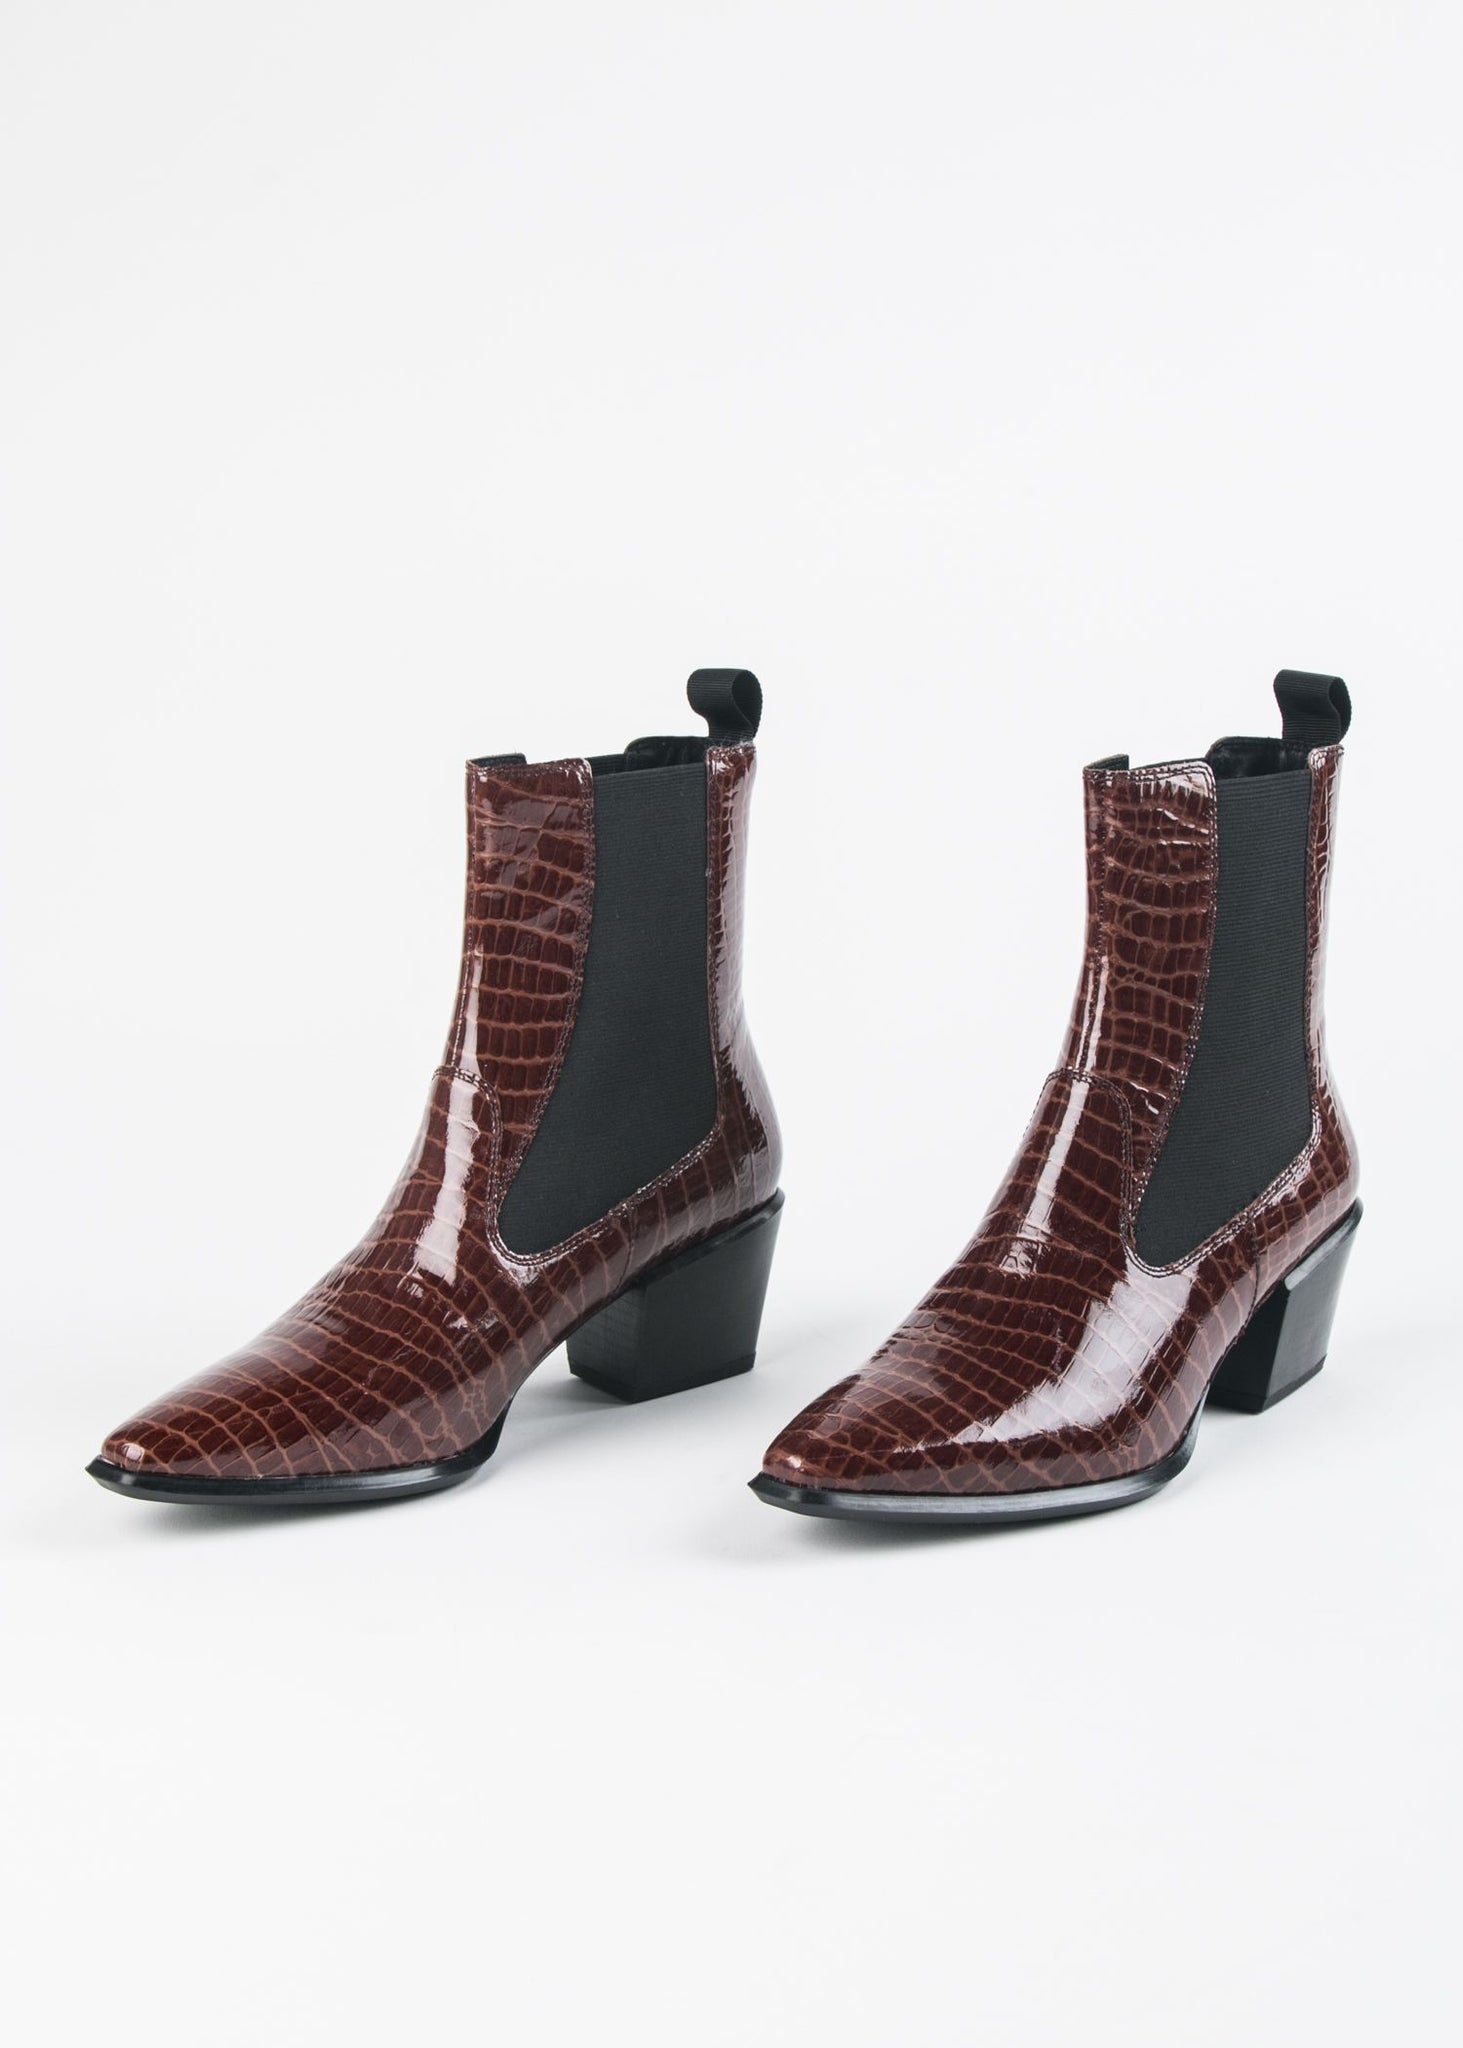 BETSY-008 PATENT CROCO CHELSEA BOOT